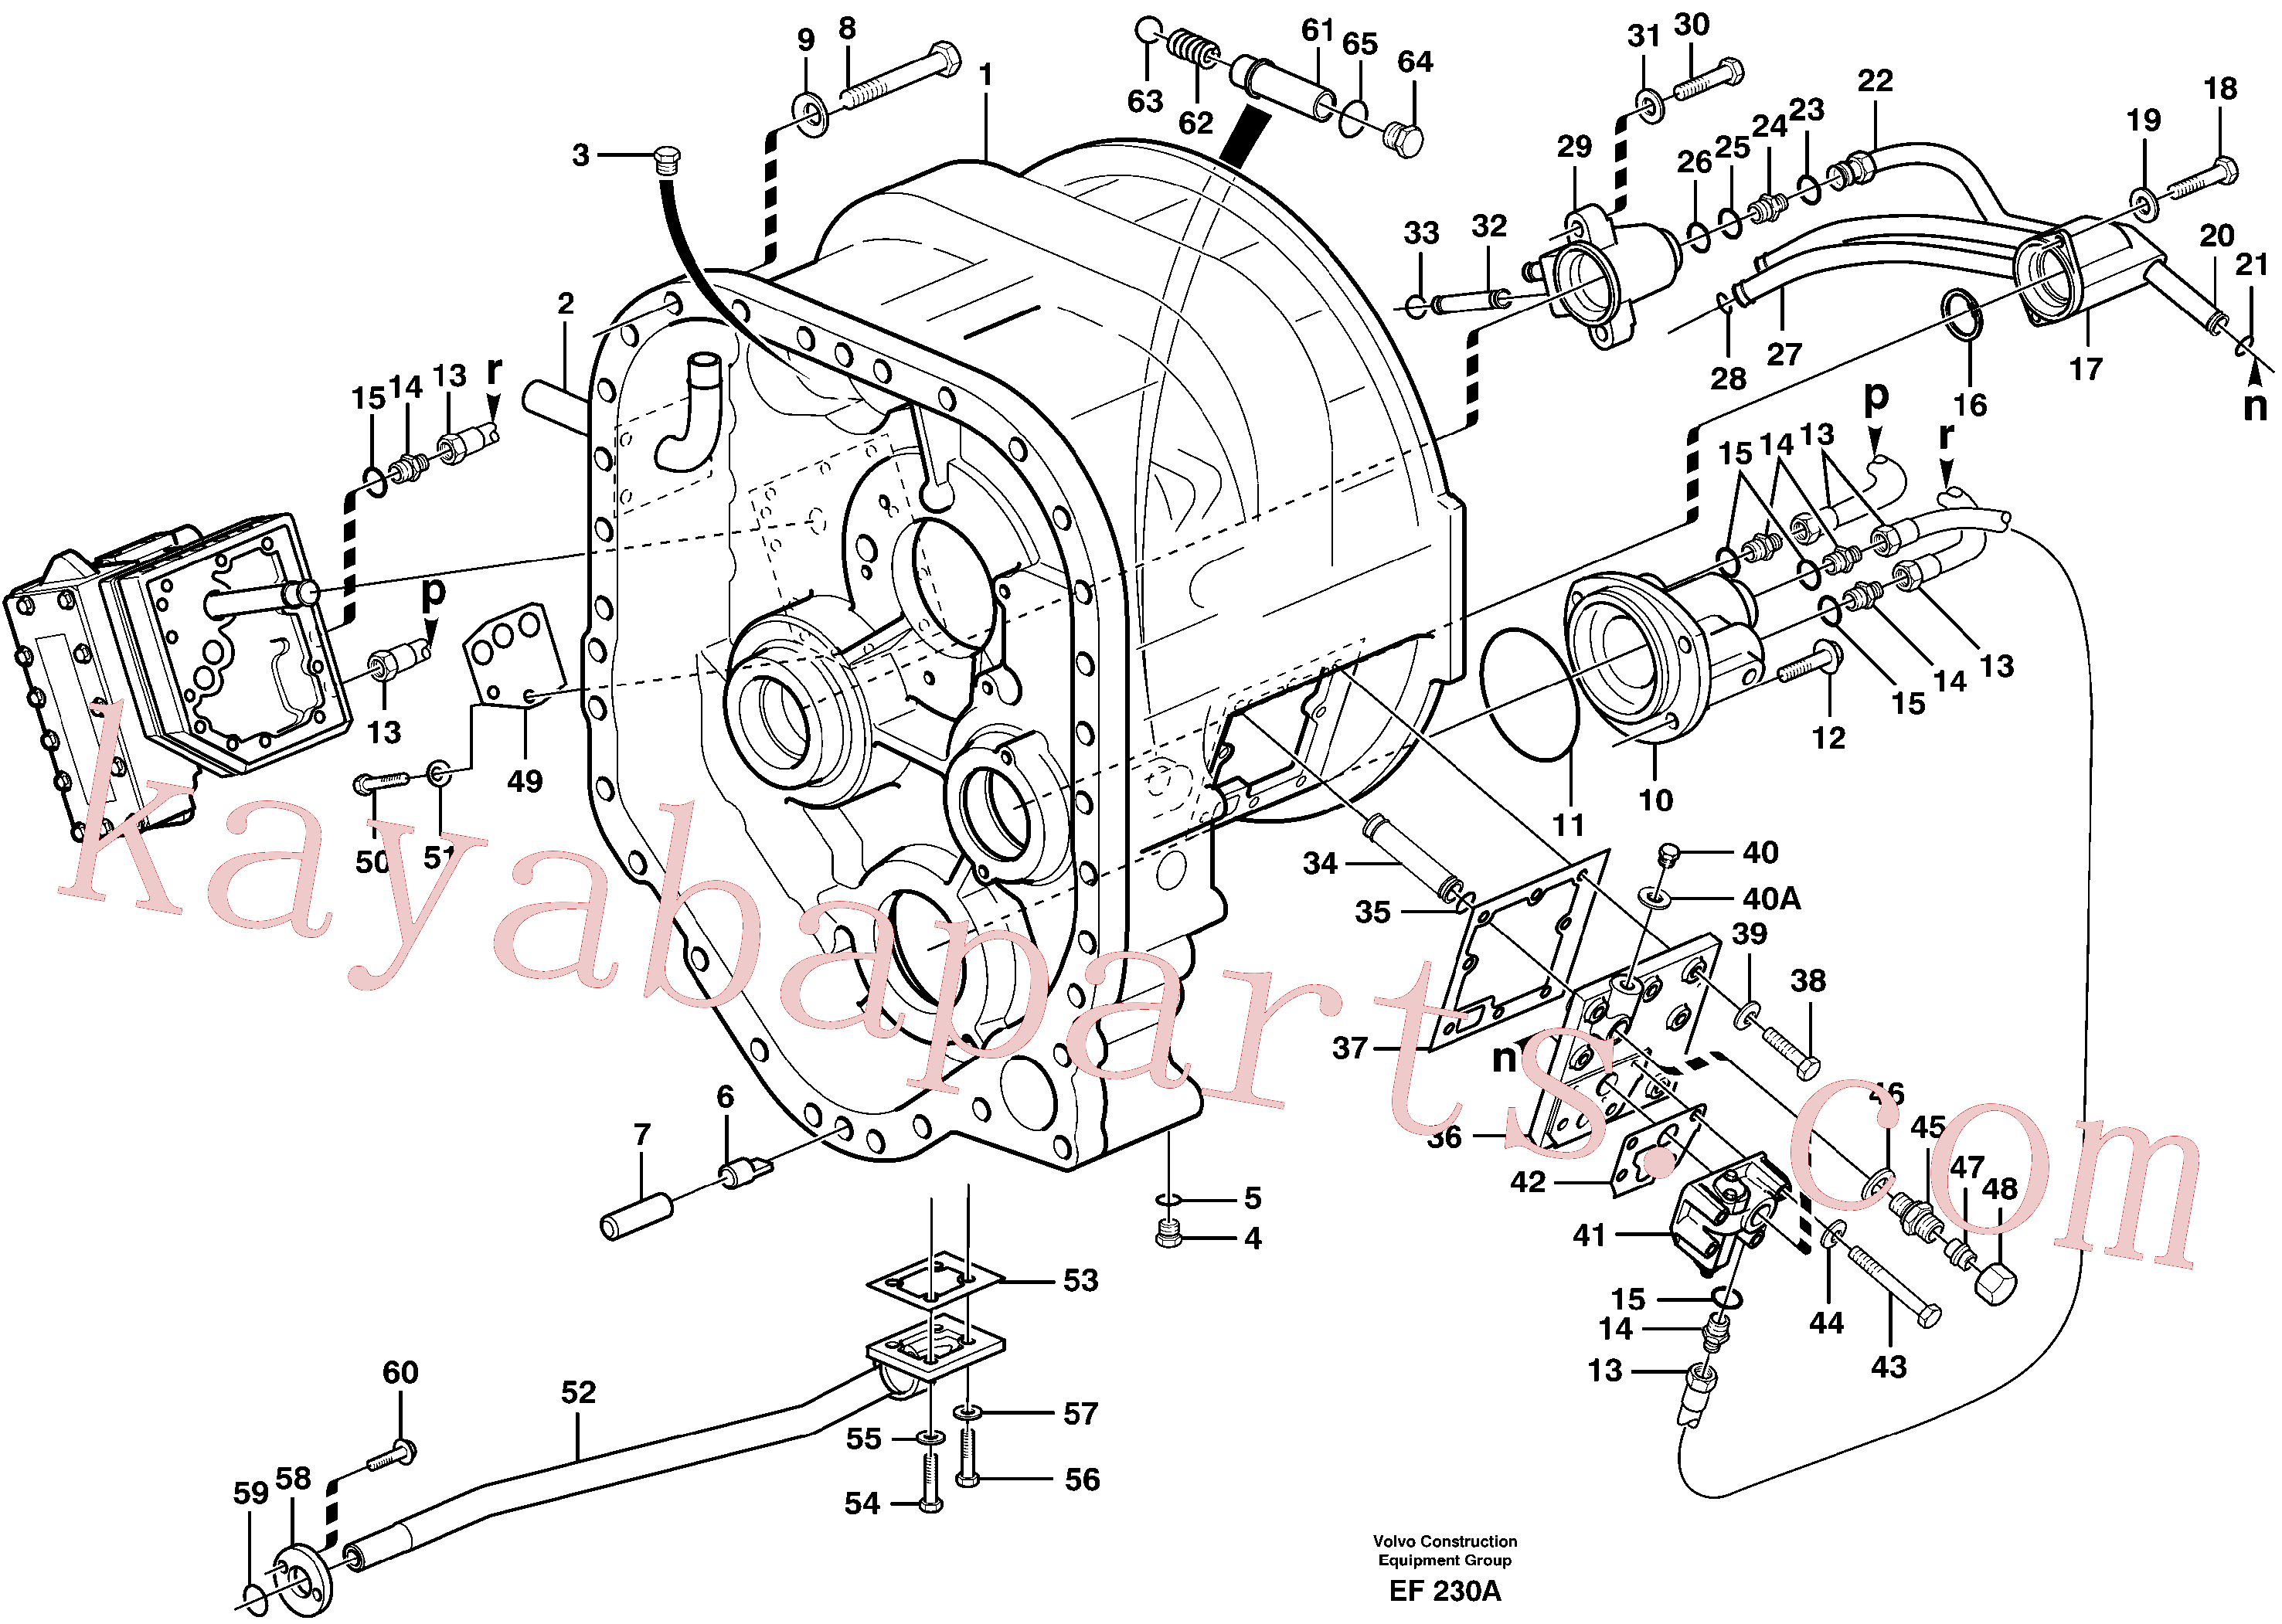 VOE926370 for Volvo Converter housing with fitting parts(EF230A assembly)